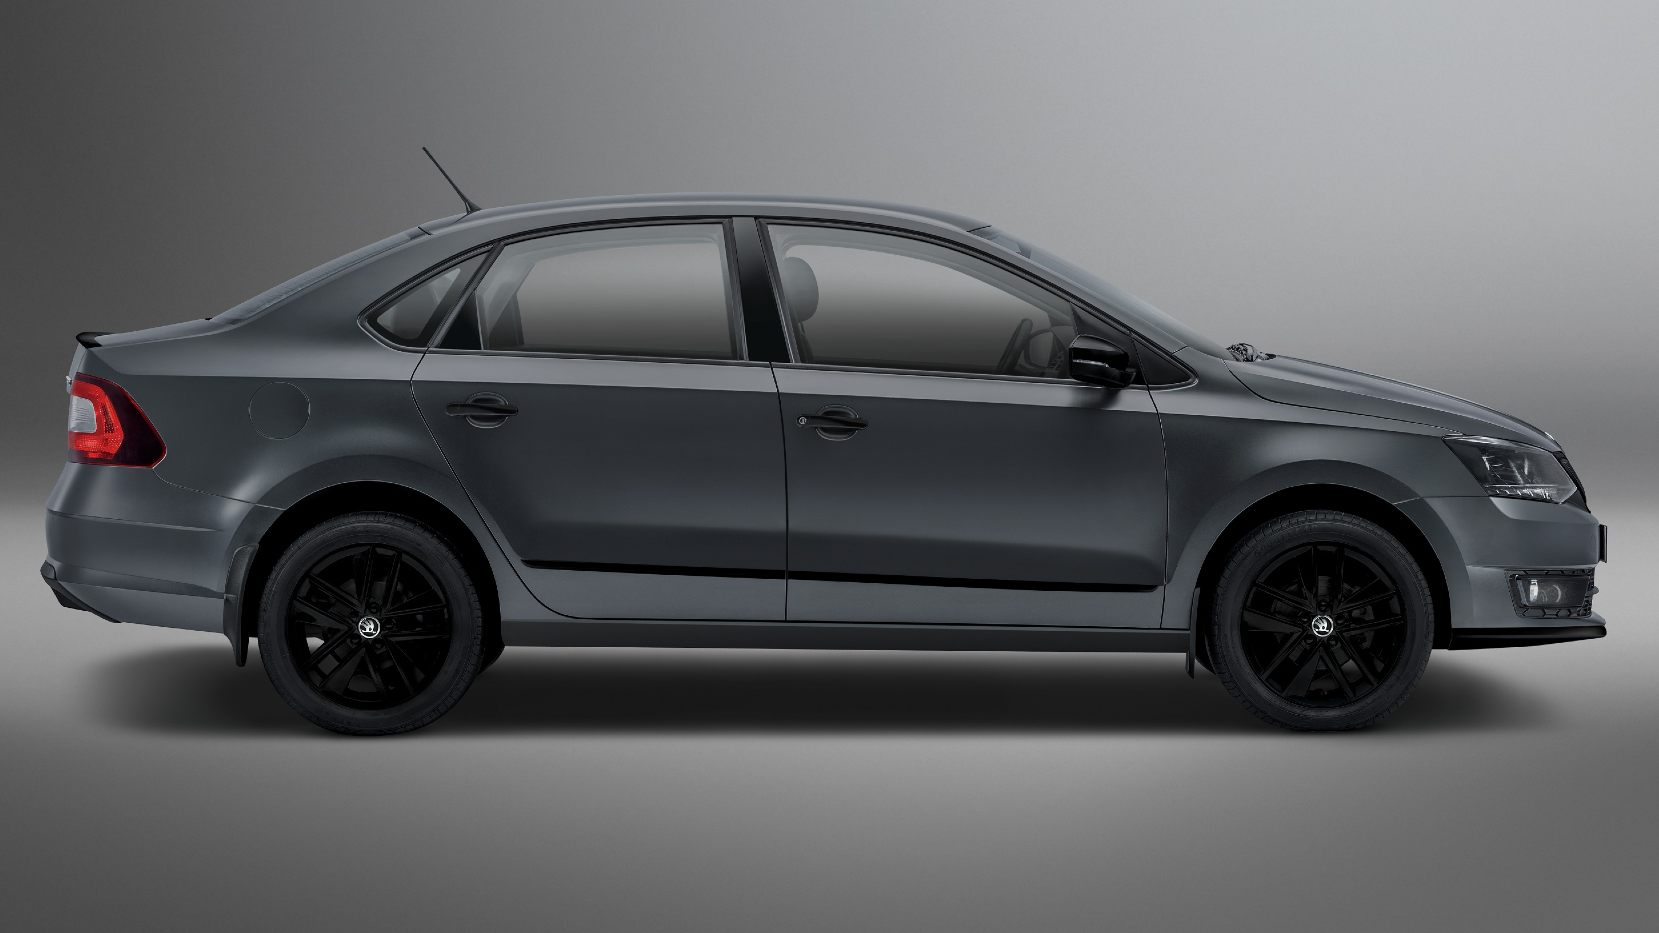 The Skoda Rapid Matte Edition marks the end of the road for the Rapid, with an all-new Skoda sedan due early next year. Image: Skoda